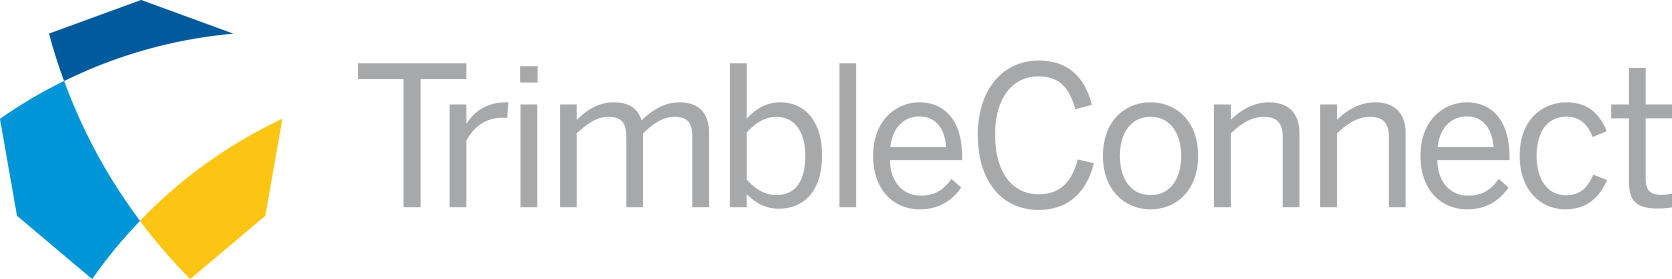 Trimble Connect Logo